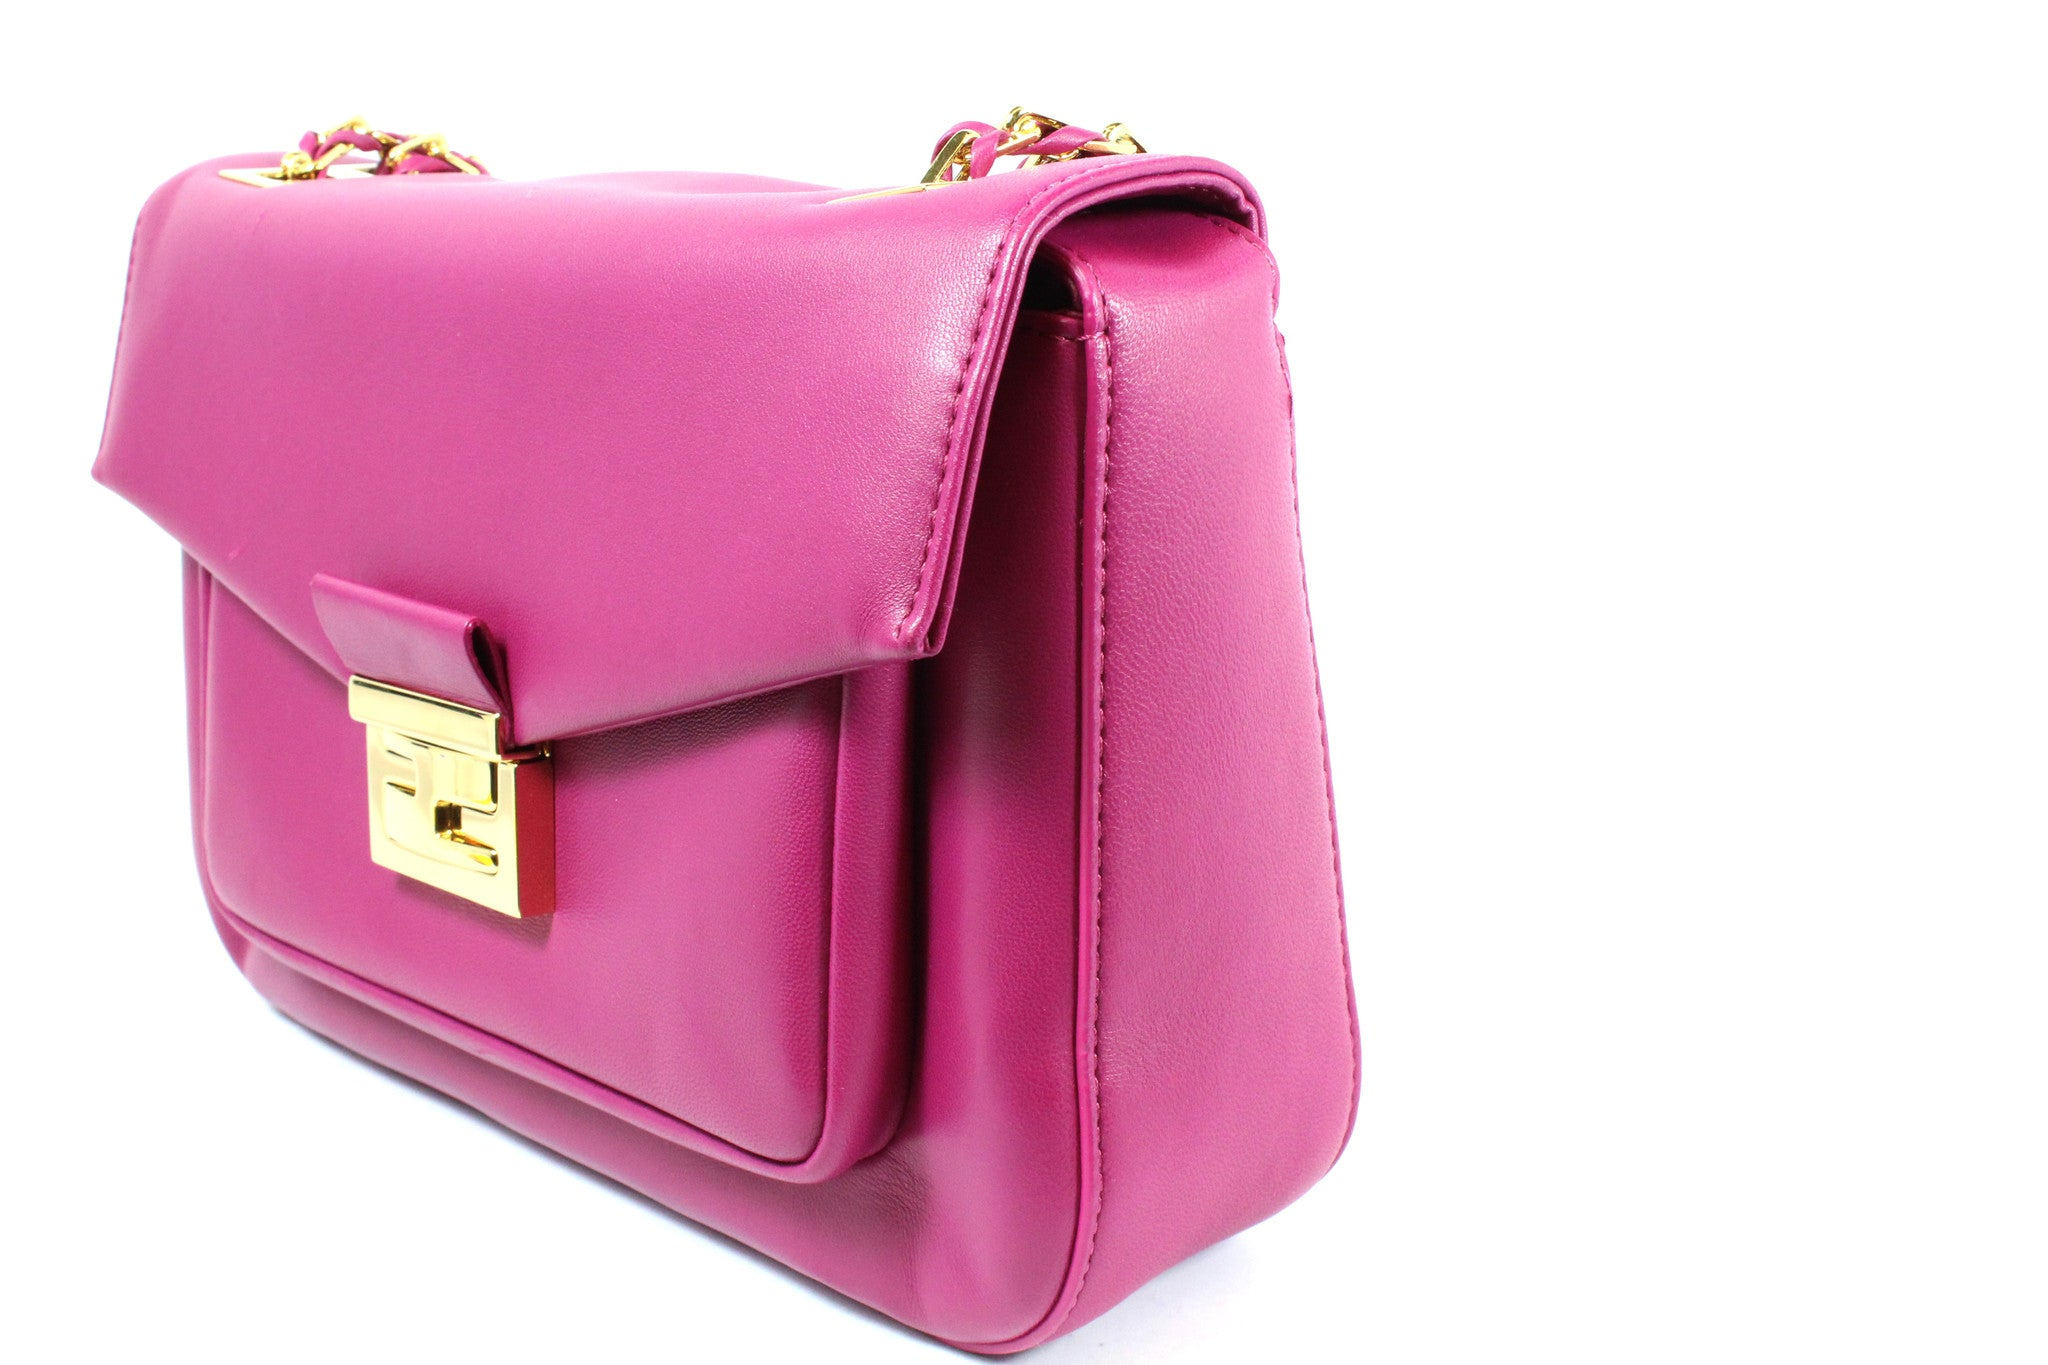 Fendi Cyclamen Pink Leather Logo Buckle 'Be Baguette' Bag - Encore Consignment - 2